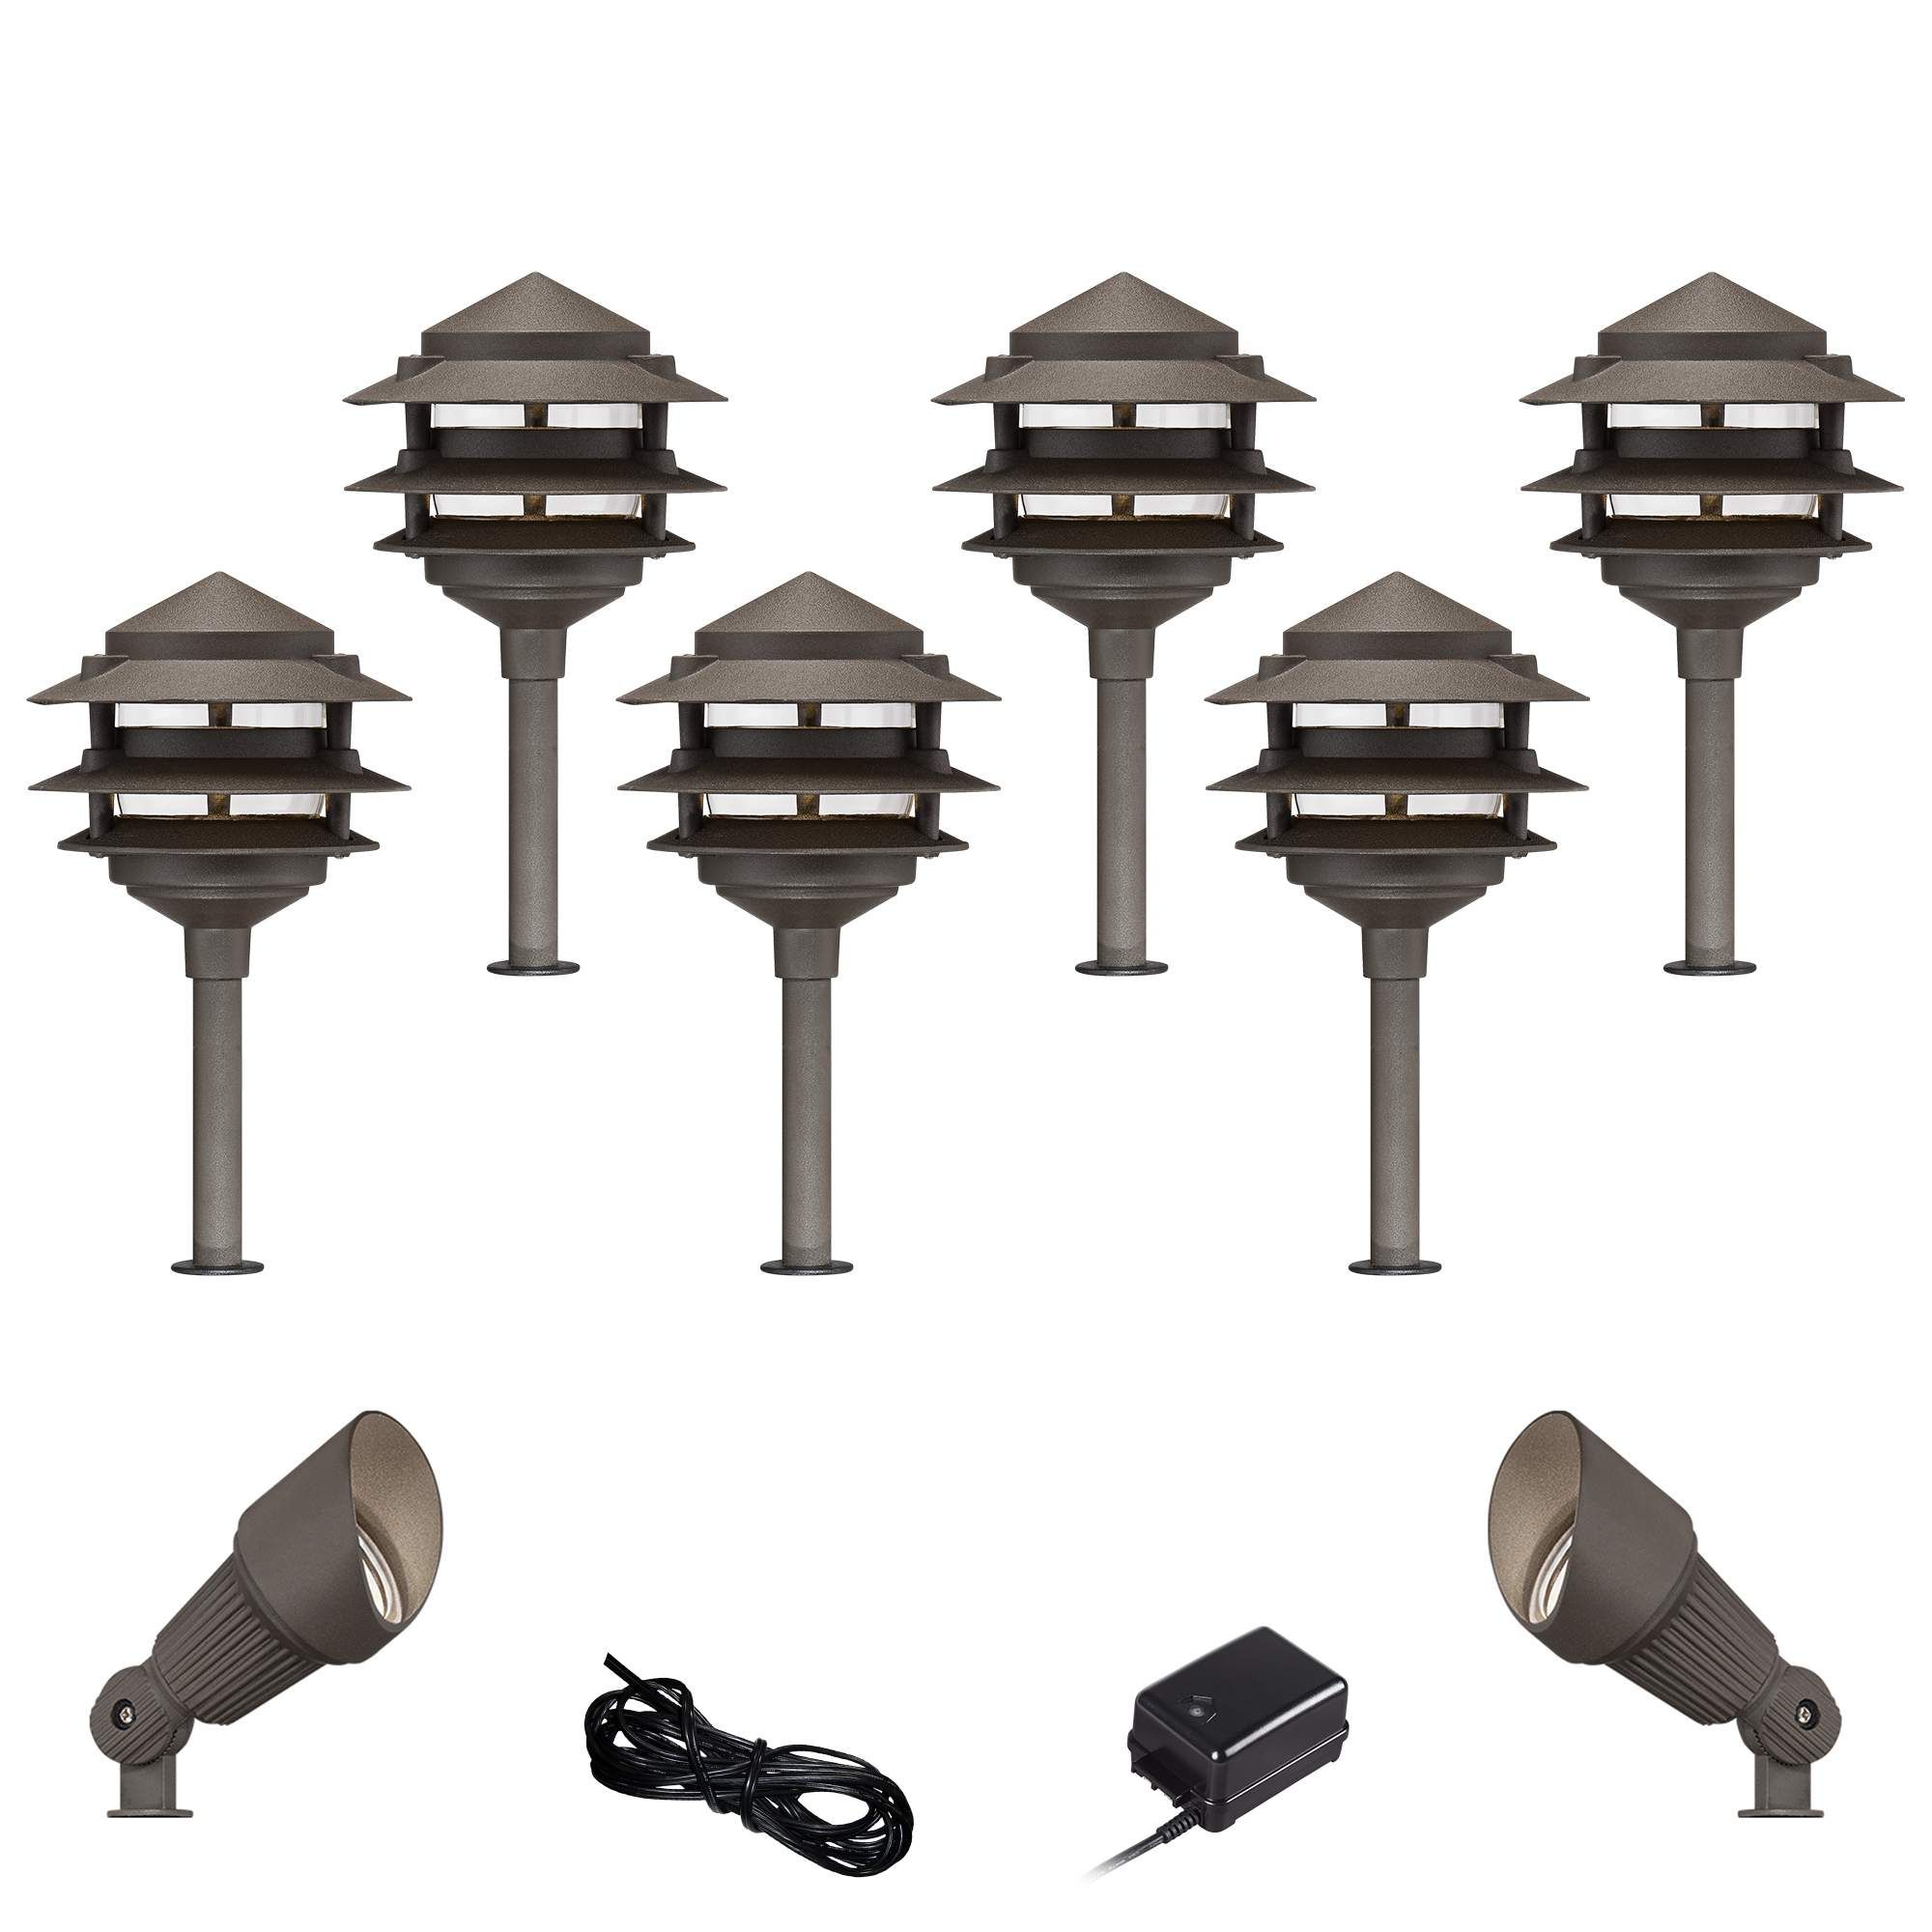 Landscape Lighting Pagoda Bronze 10 Piece Outdoor Led Landscape Lighting Set Led Landscape Lighting Outdoor Lighting Landscape Landscape Lighting Kits